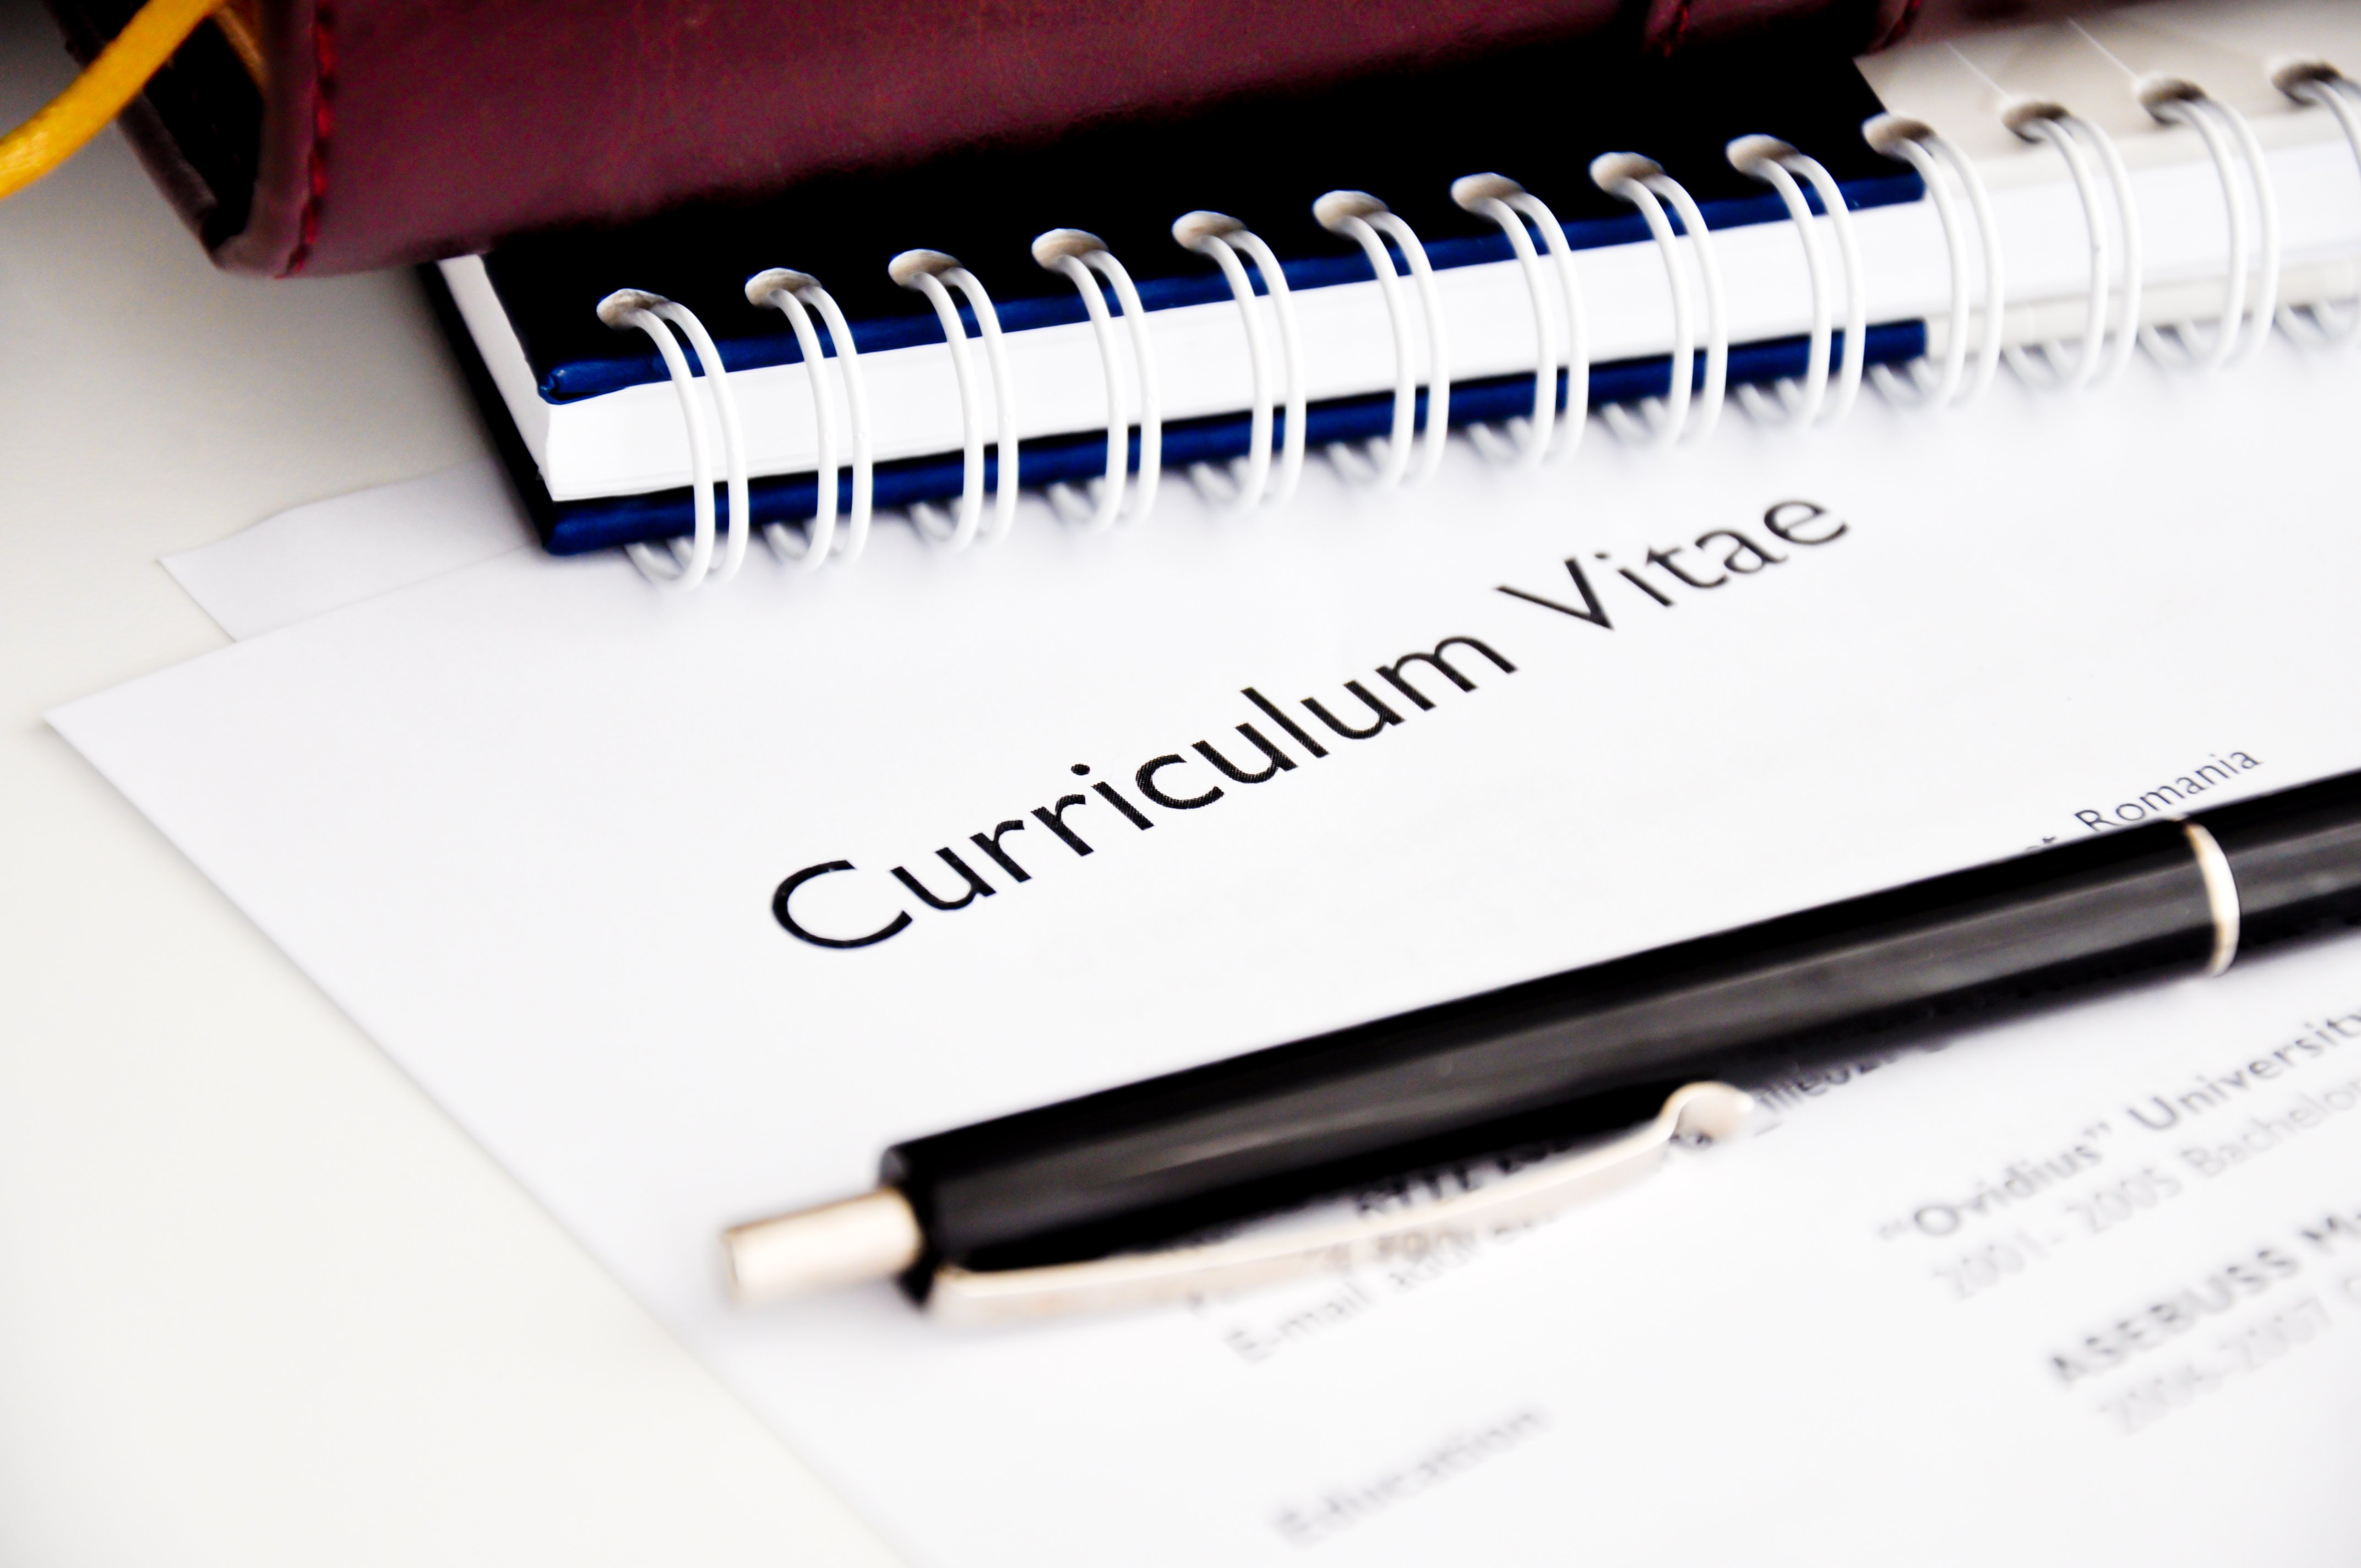 Guest Post: How to Get the Job with a Strong CV, Interview